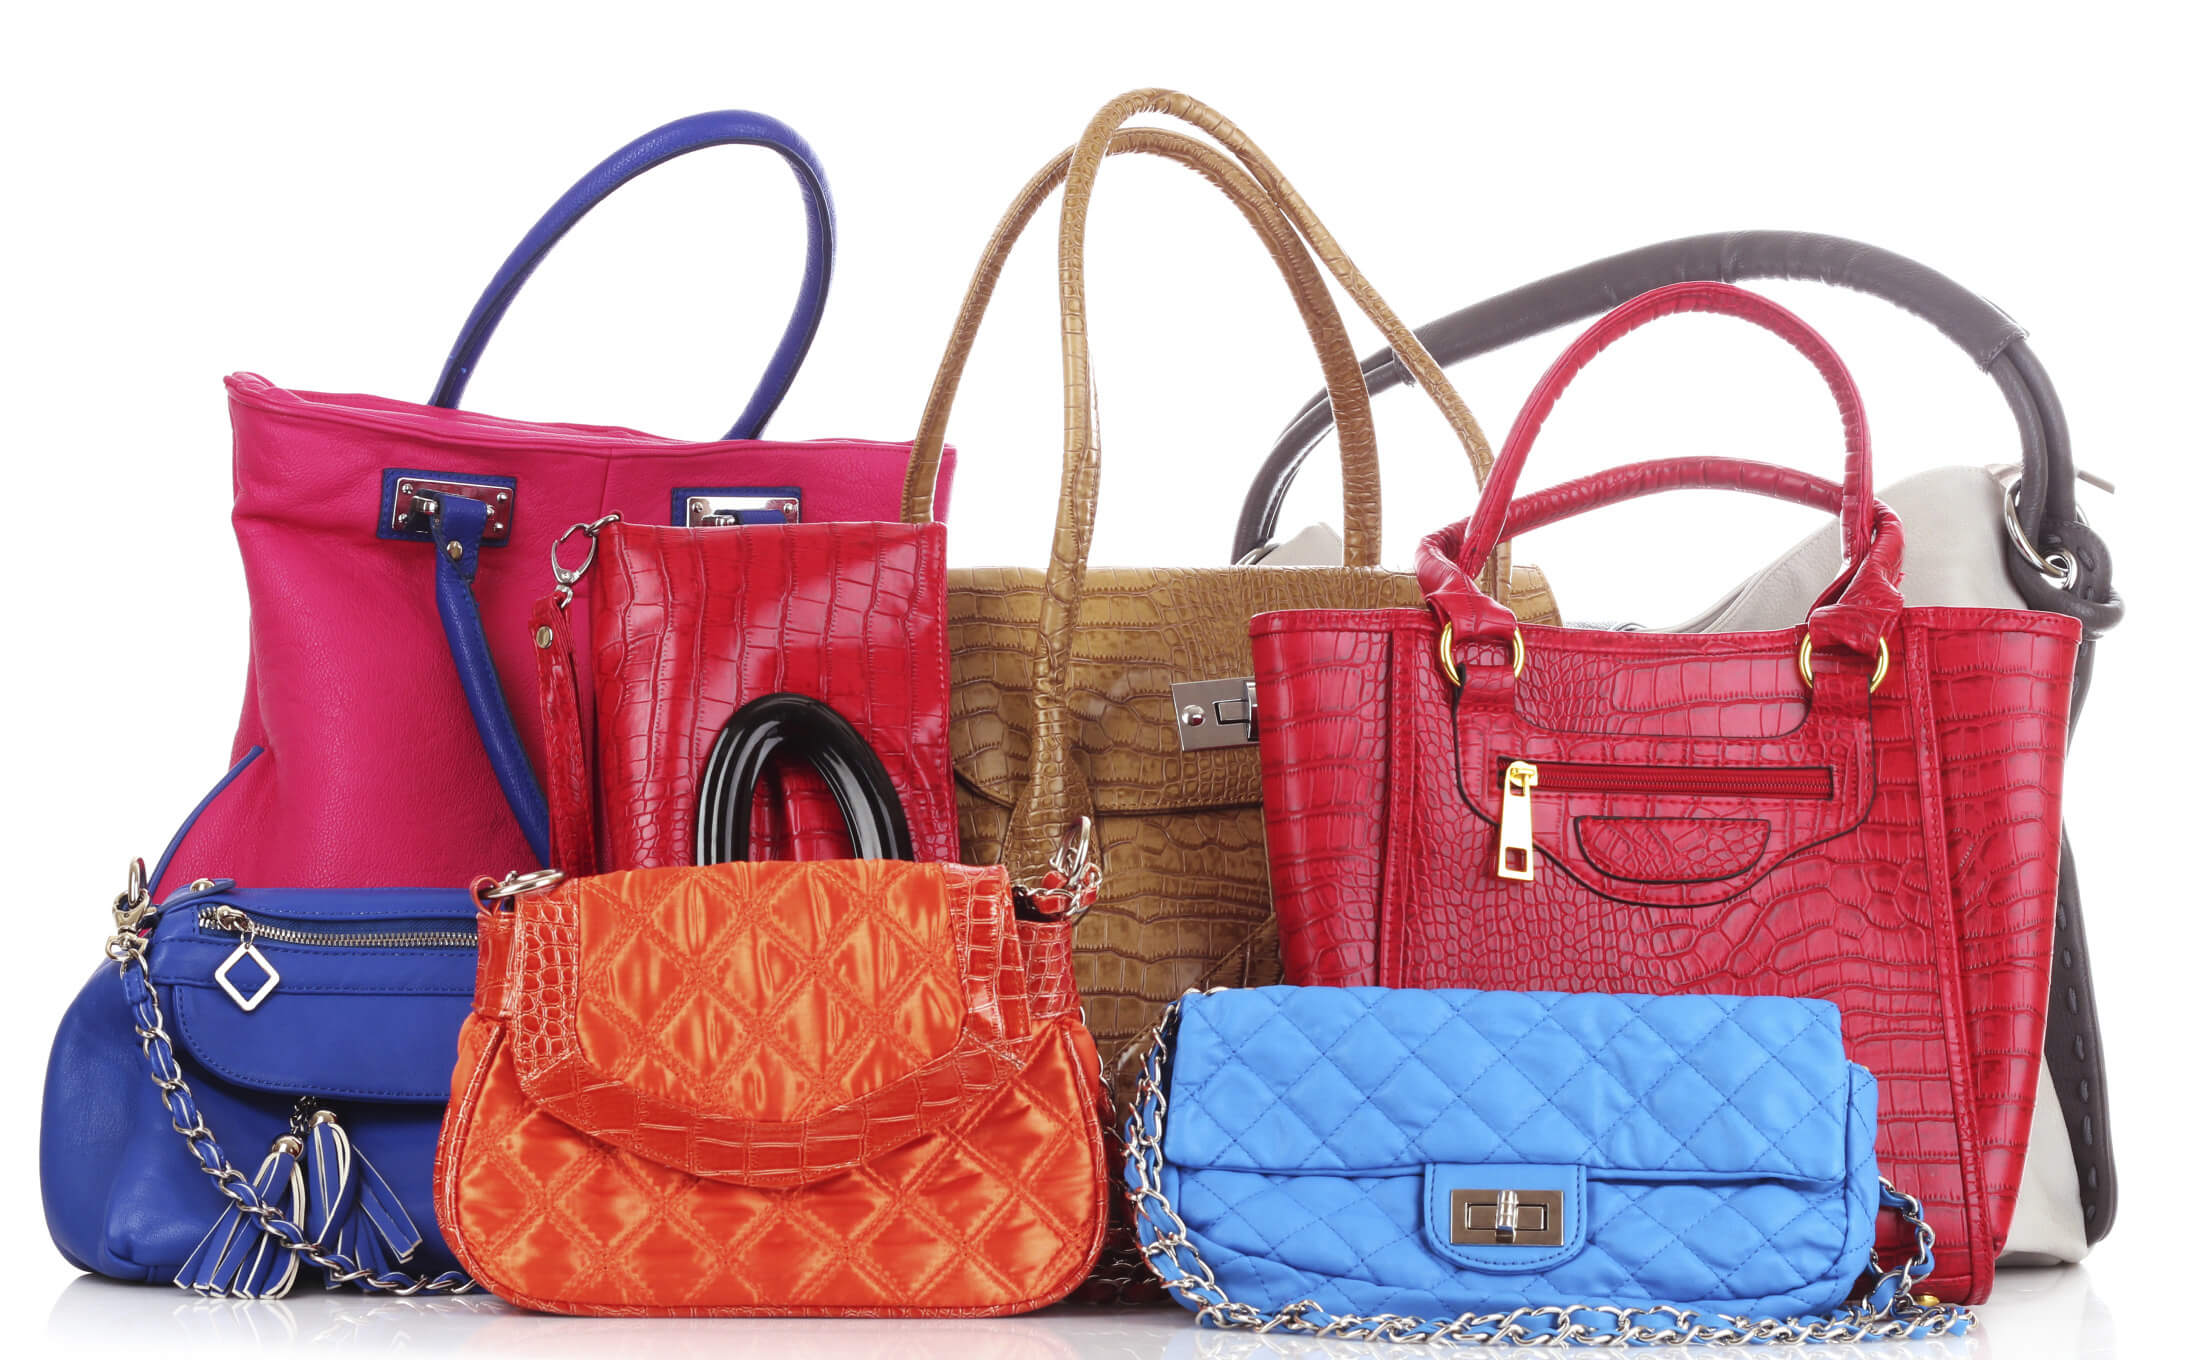 Ladies Handbags » Handbag Buying Guide » Fashion Tips